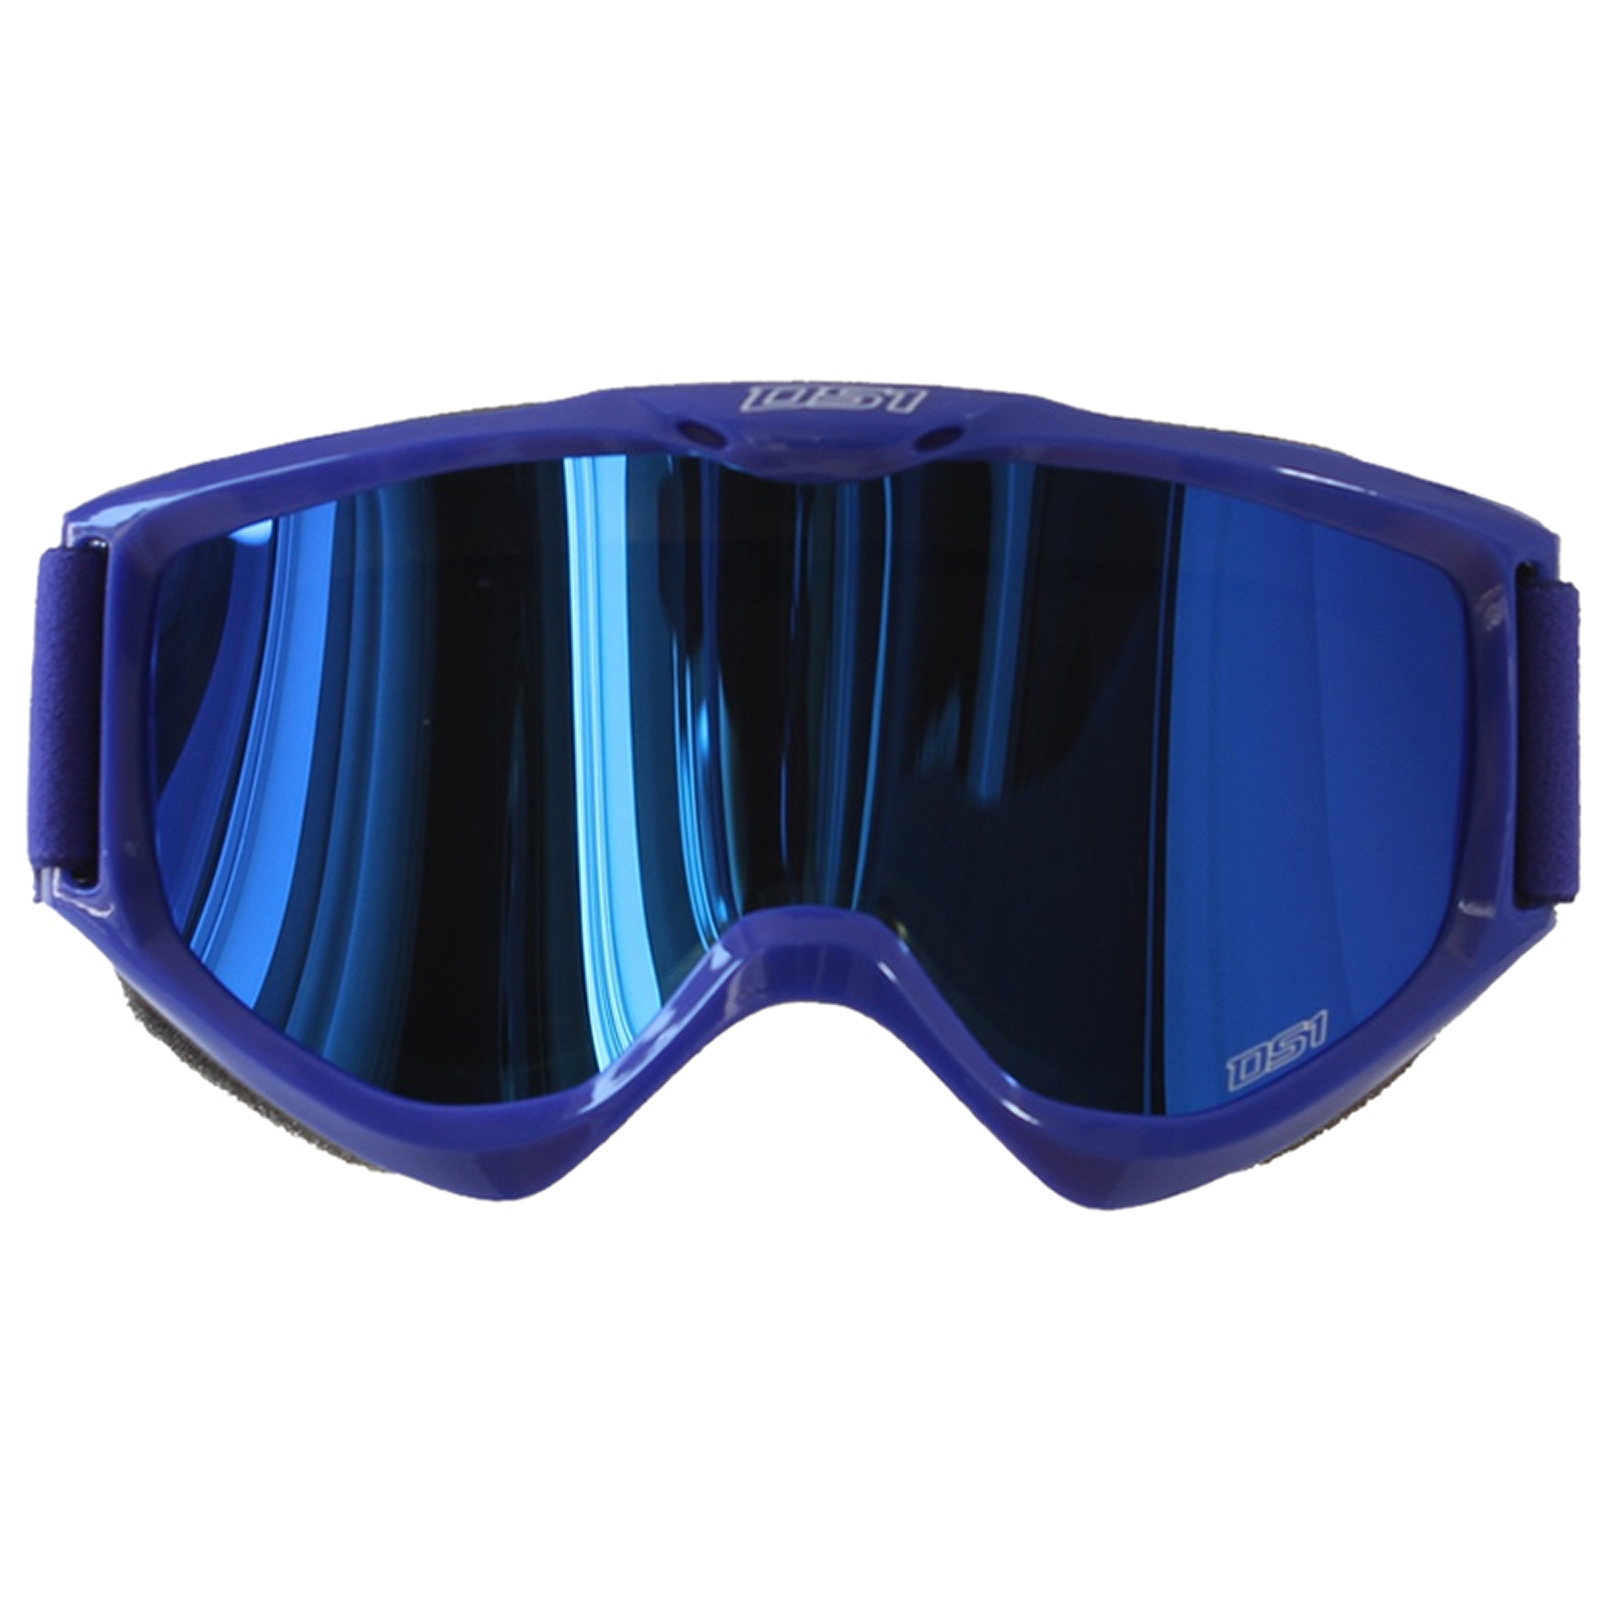 motocross goggles  DS1 HYPE-X ADULT TINTED LENS MX ENDURO ATV ANTI-FOG QUAD MOTOCROSS ...